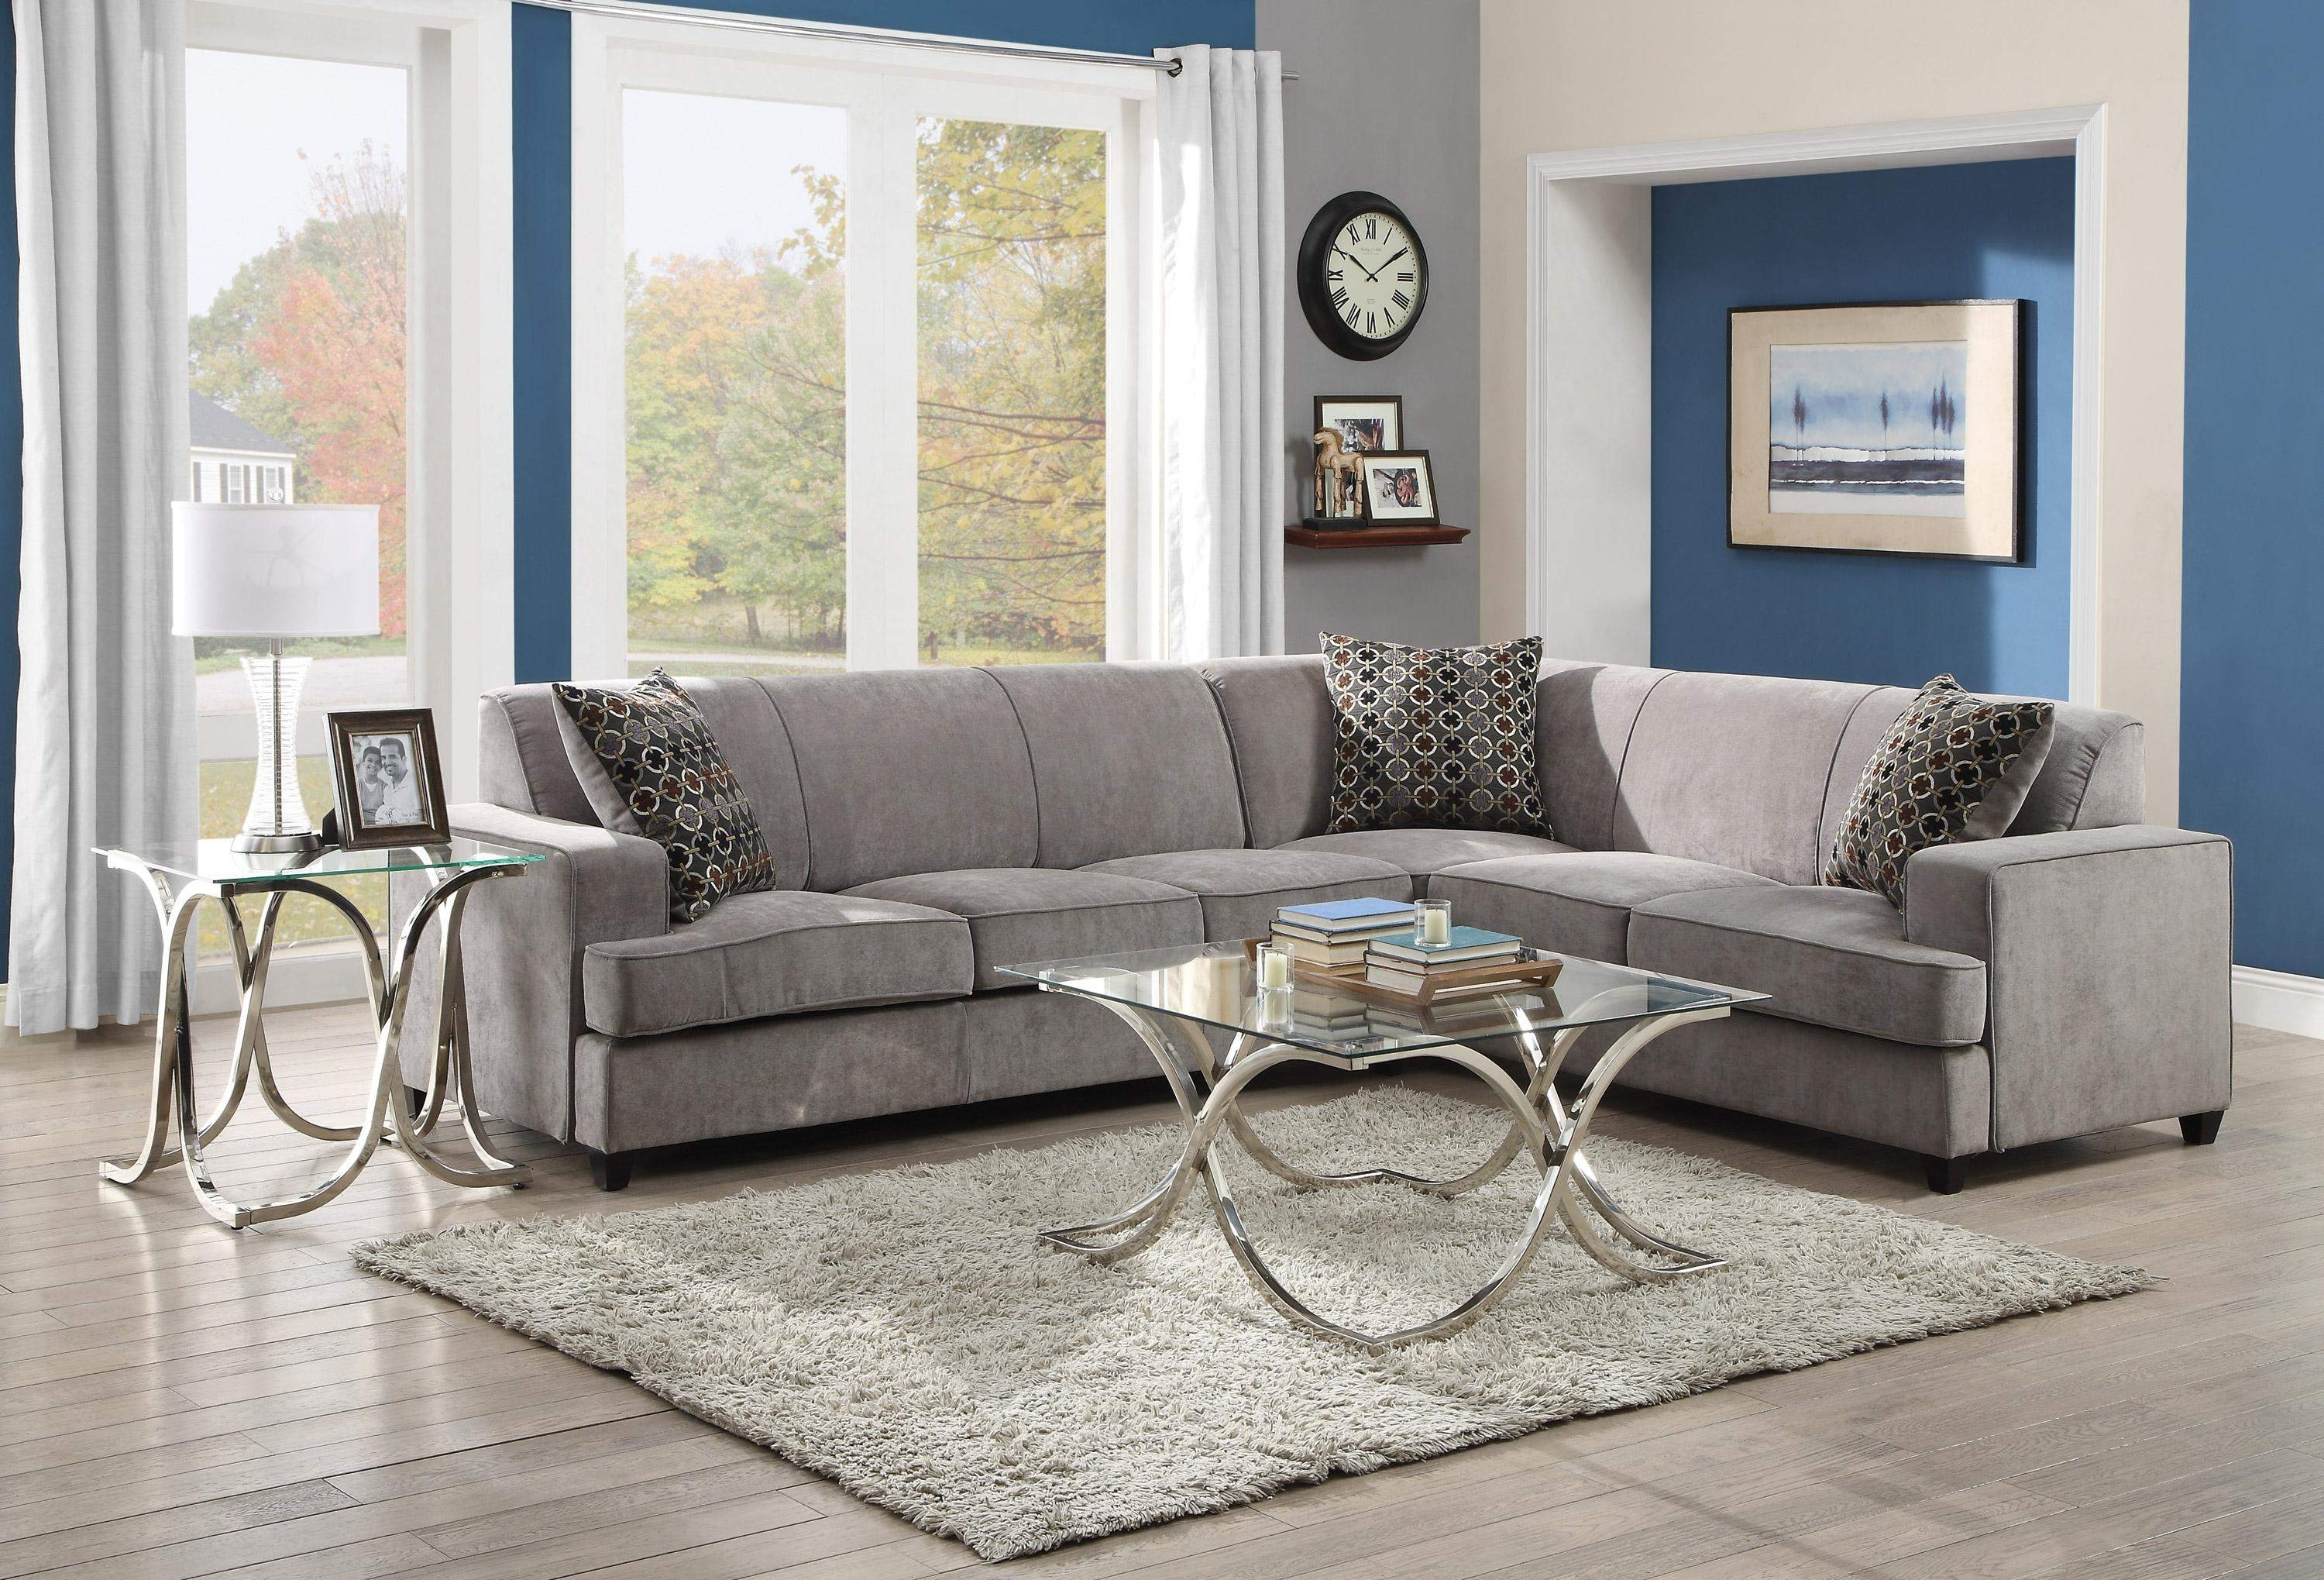 Tess Casual Grey Fabric Sectional Sofa For Corners With Queen Size regarding Philadelphia Sectional Sofas (Image 10 of 10)